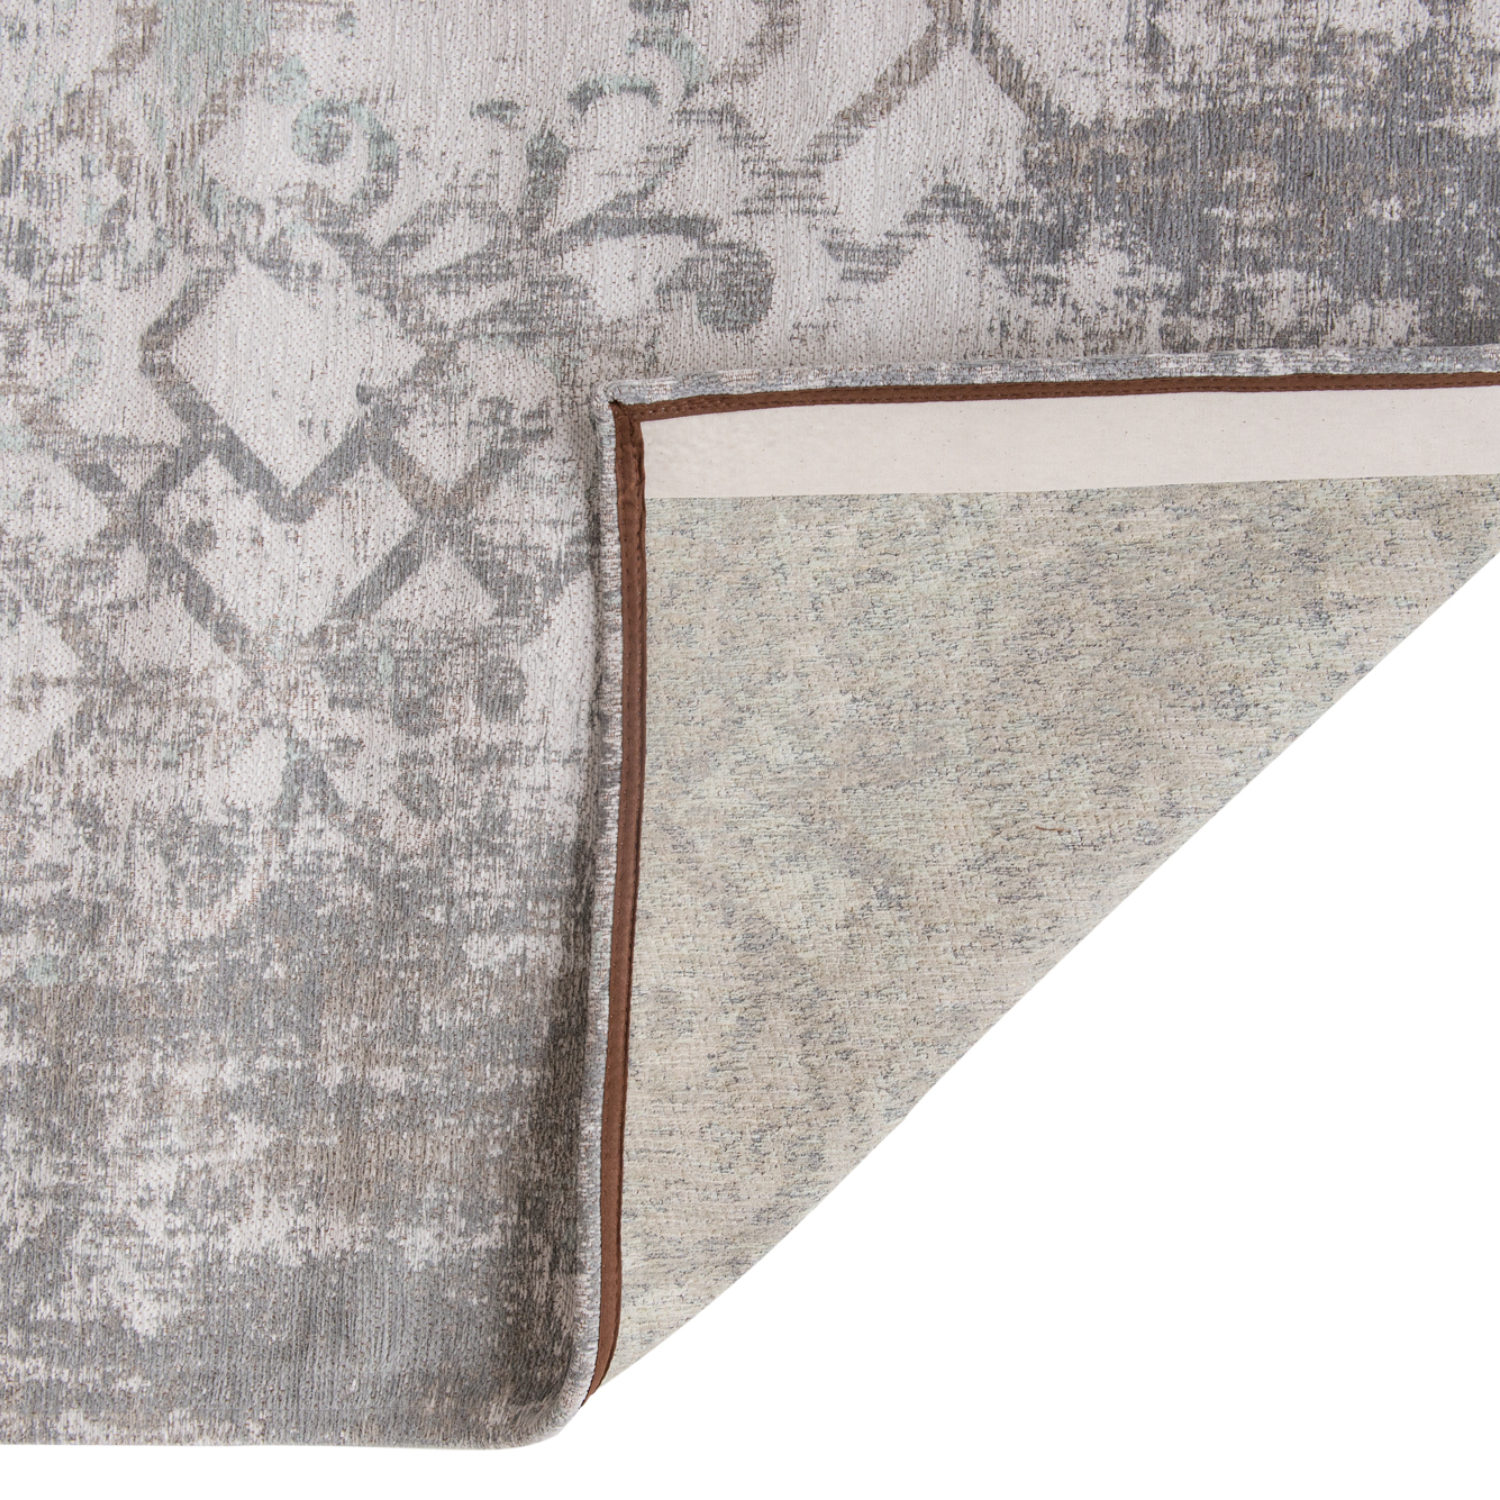 Multi-layered composition of floral, Arabic geometric and distressed elements, set in soft hues